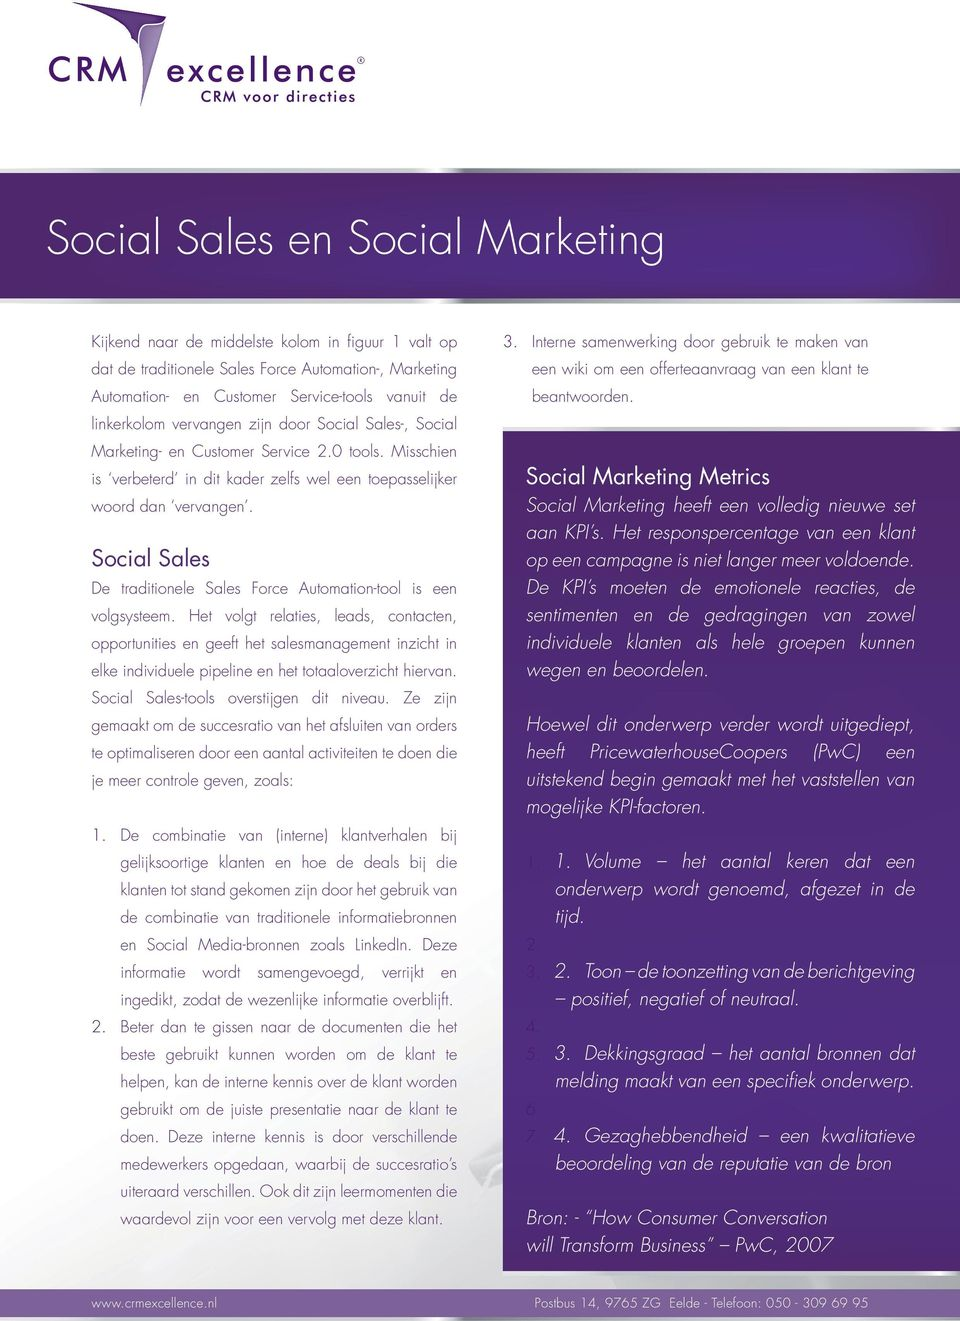 Social Sales De traditionele Sales Force Automation-tool is een volgsysteem.